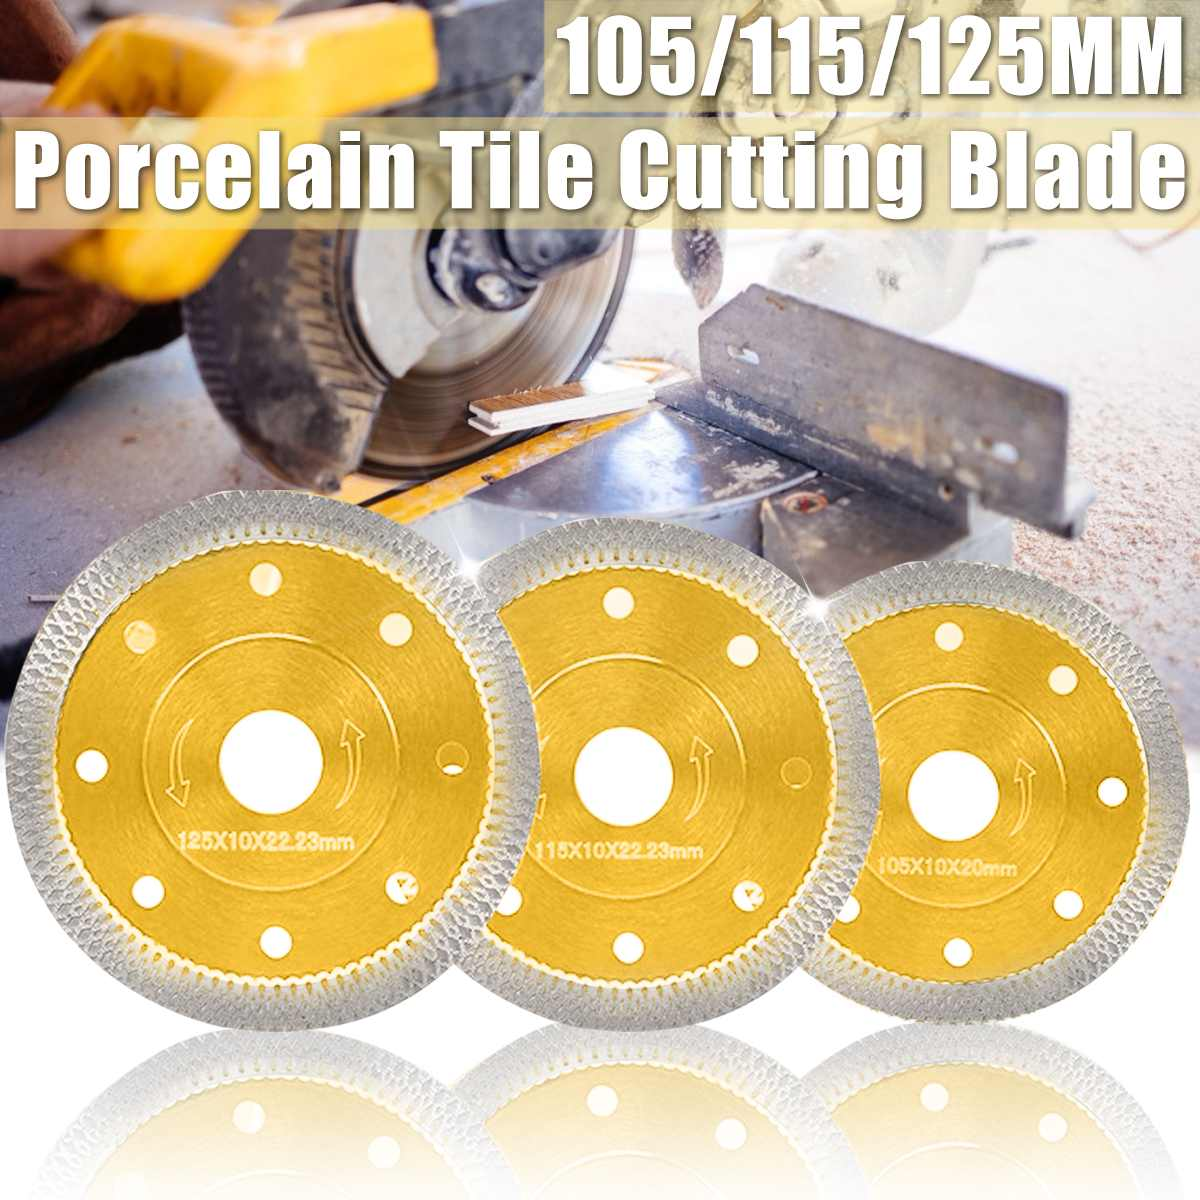 105/115/125mm Diamond Saw Blades Marble Cutting Blades Angle Grinder Blade Porcelain Tile Cutting Blades Cutting Wheel Marble